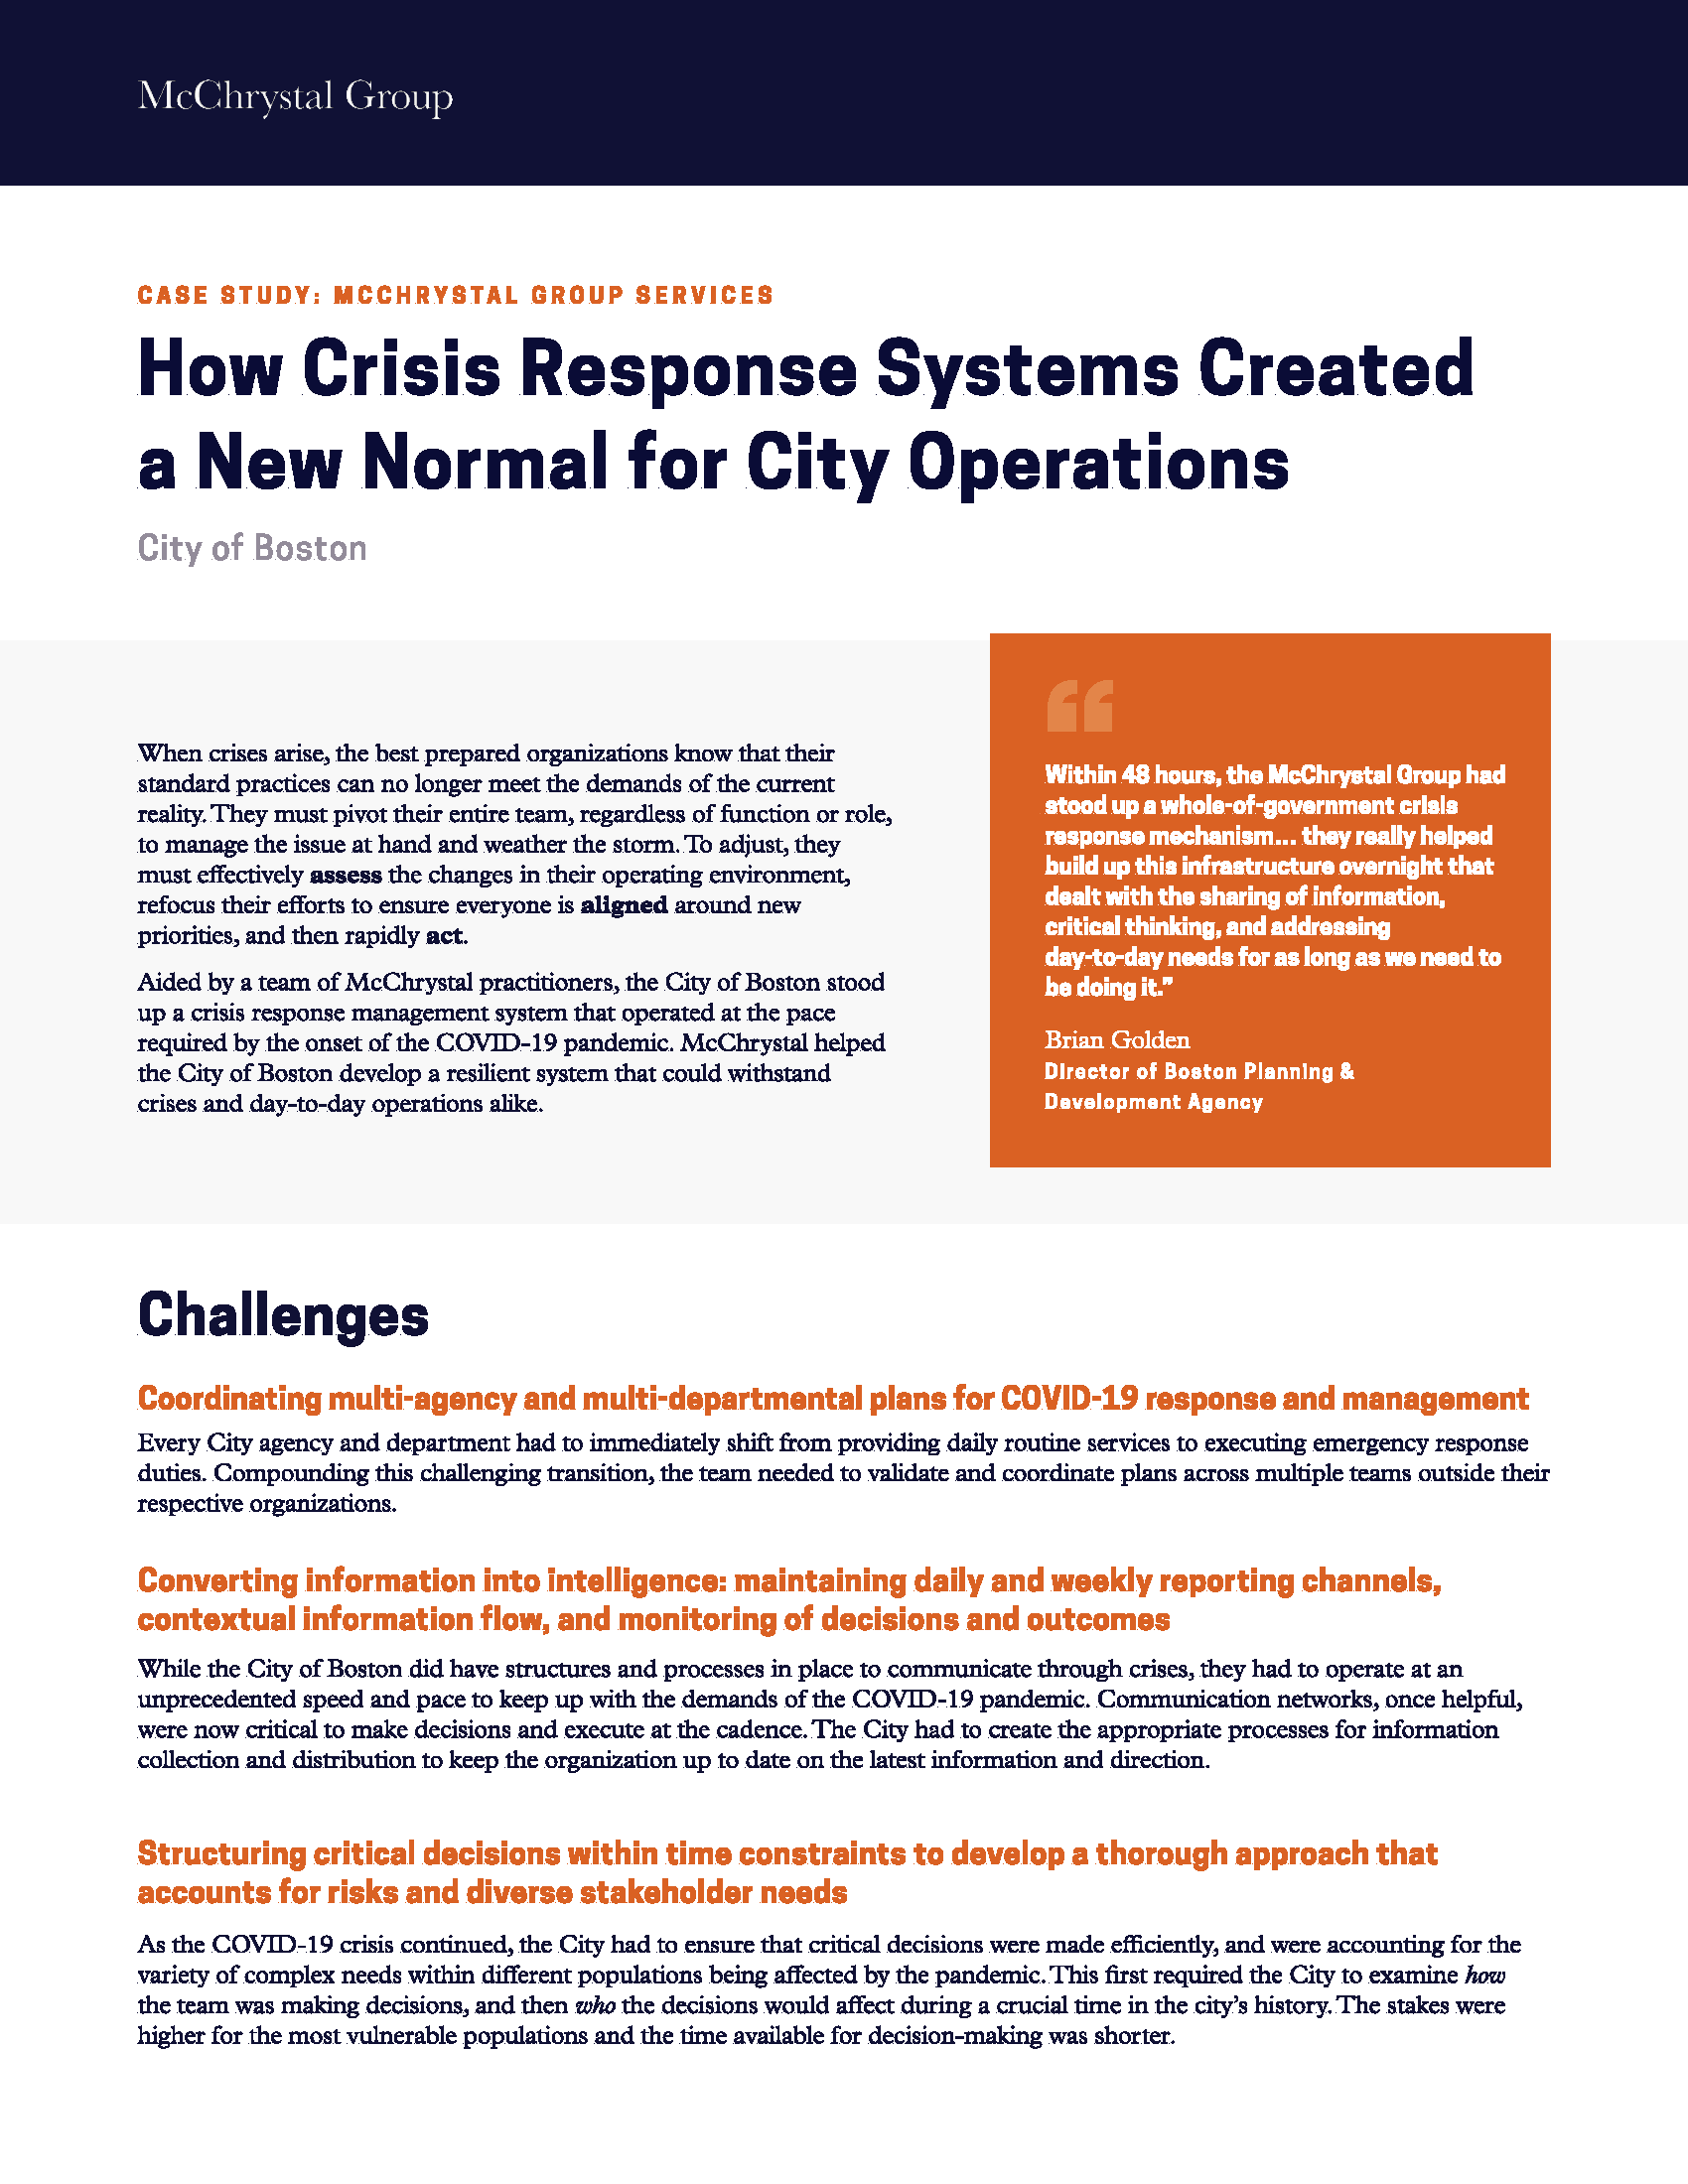 Preview of McChrystal Case Study: How Crisis Response Systems Created a New Normal for City Operations